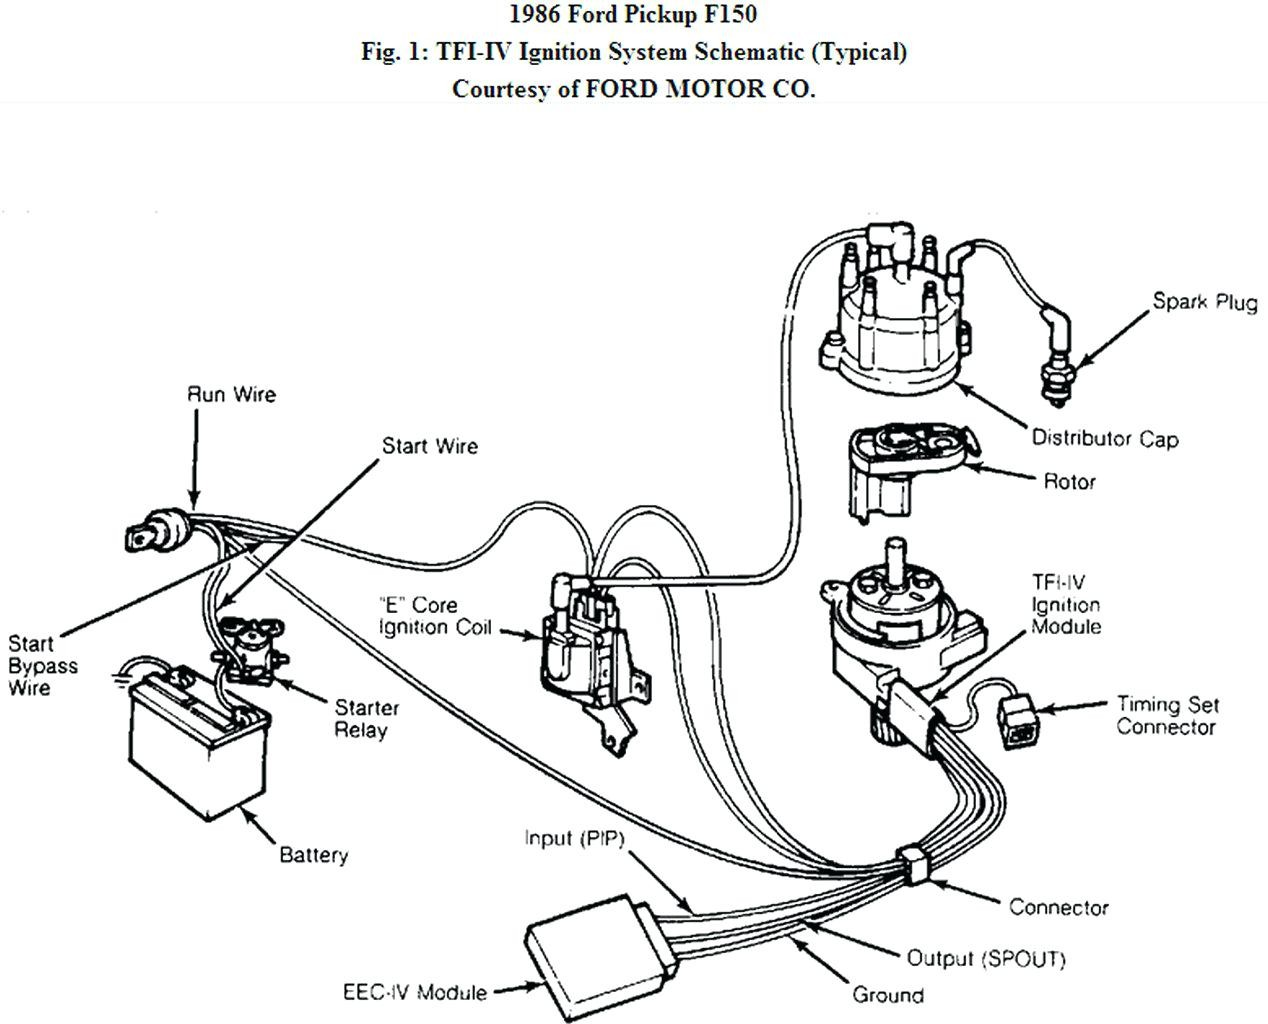 86 Ford F 150 Wiring - Easy-to-read Wiring Diagrams